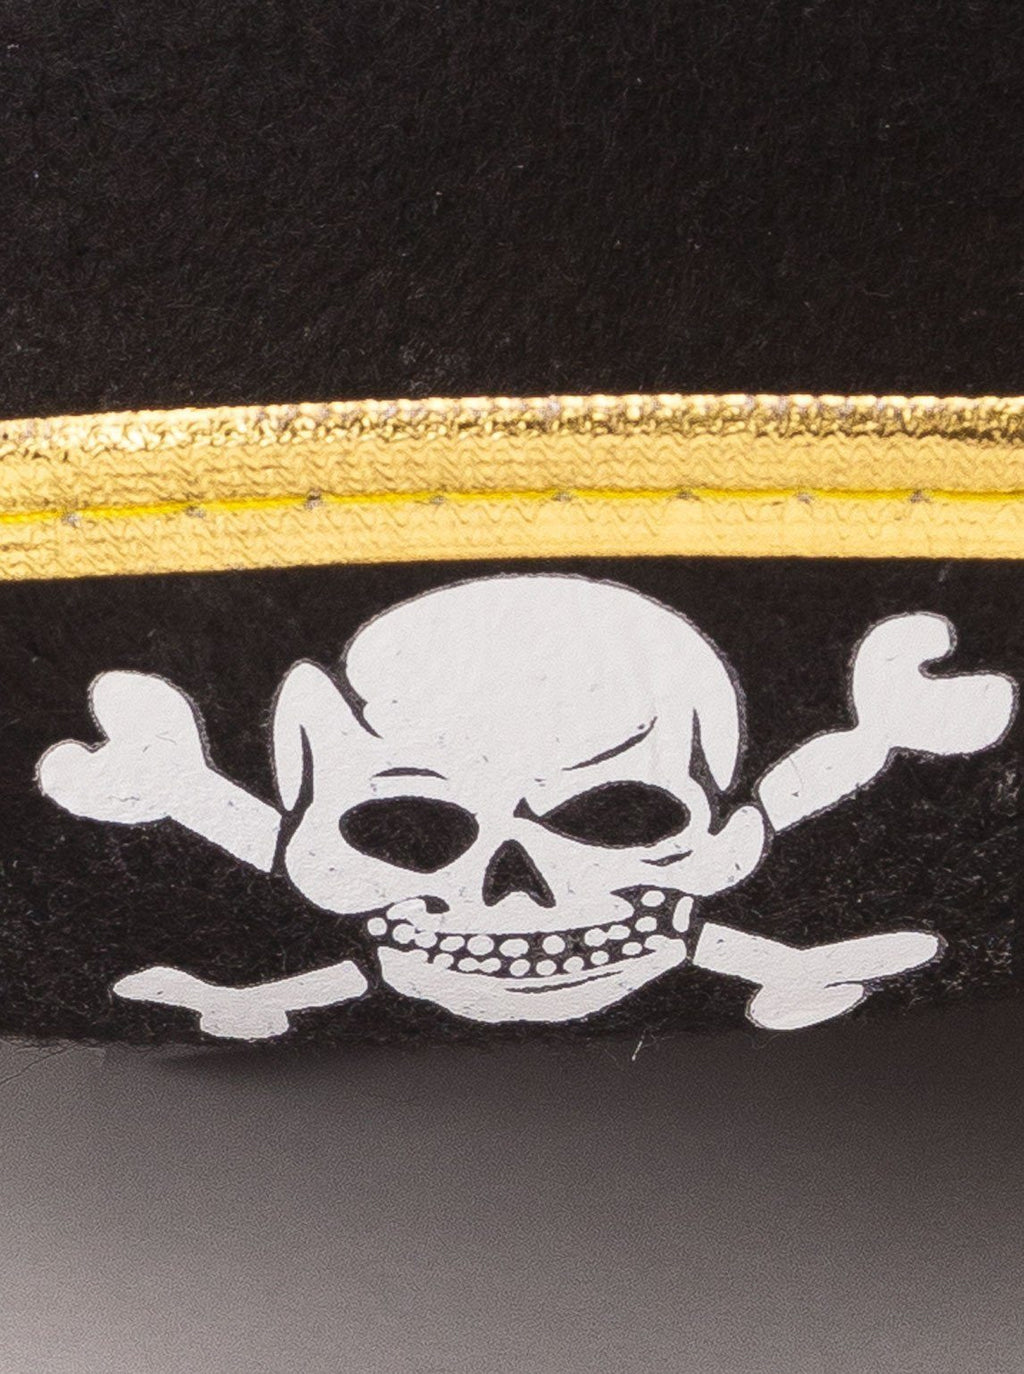 Boy Accessories - Pirate Accessory Set